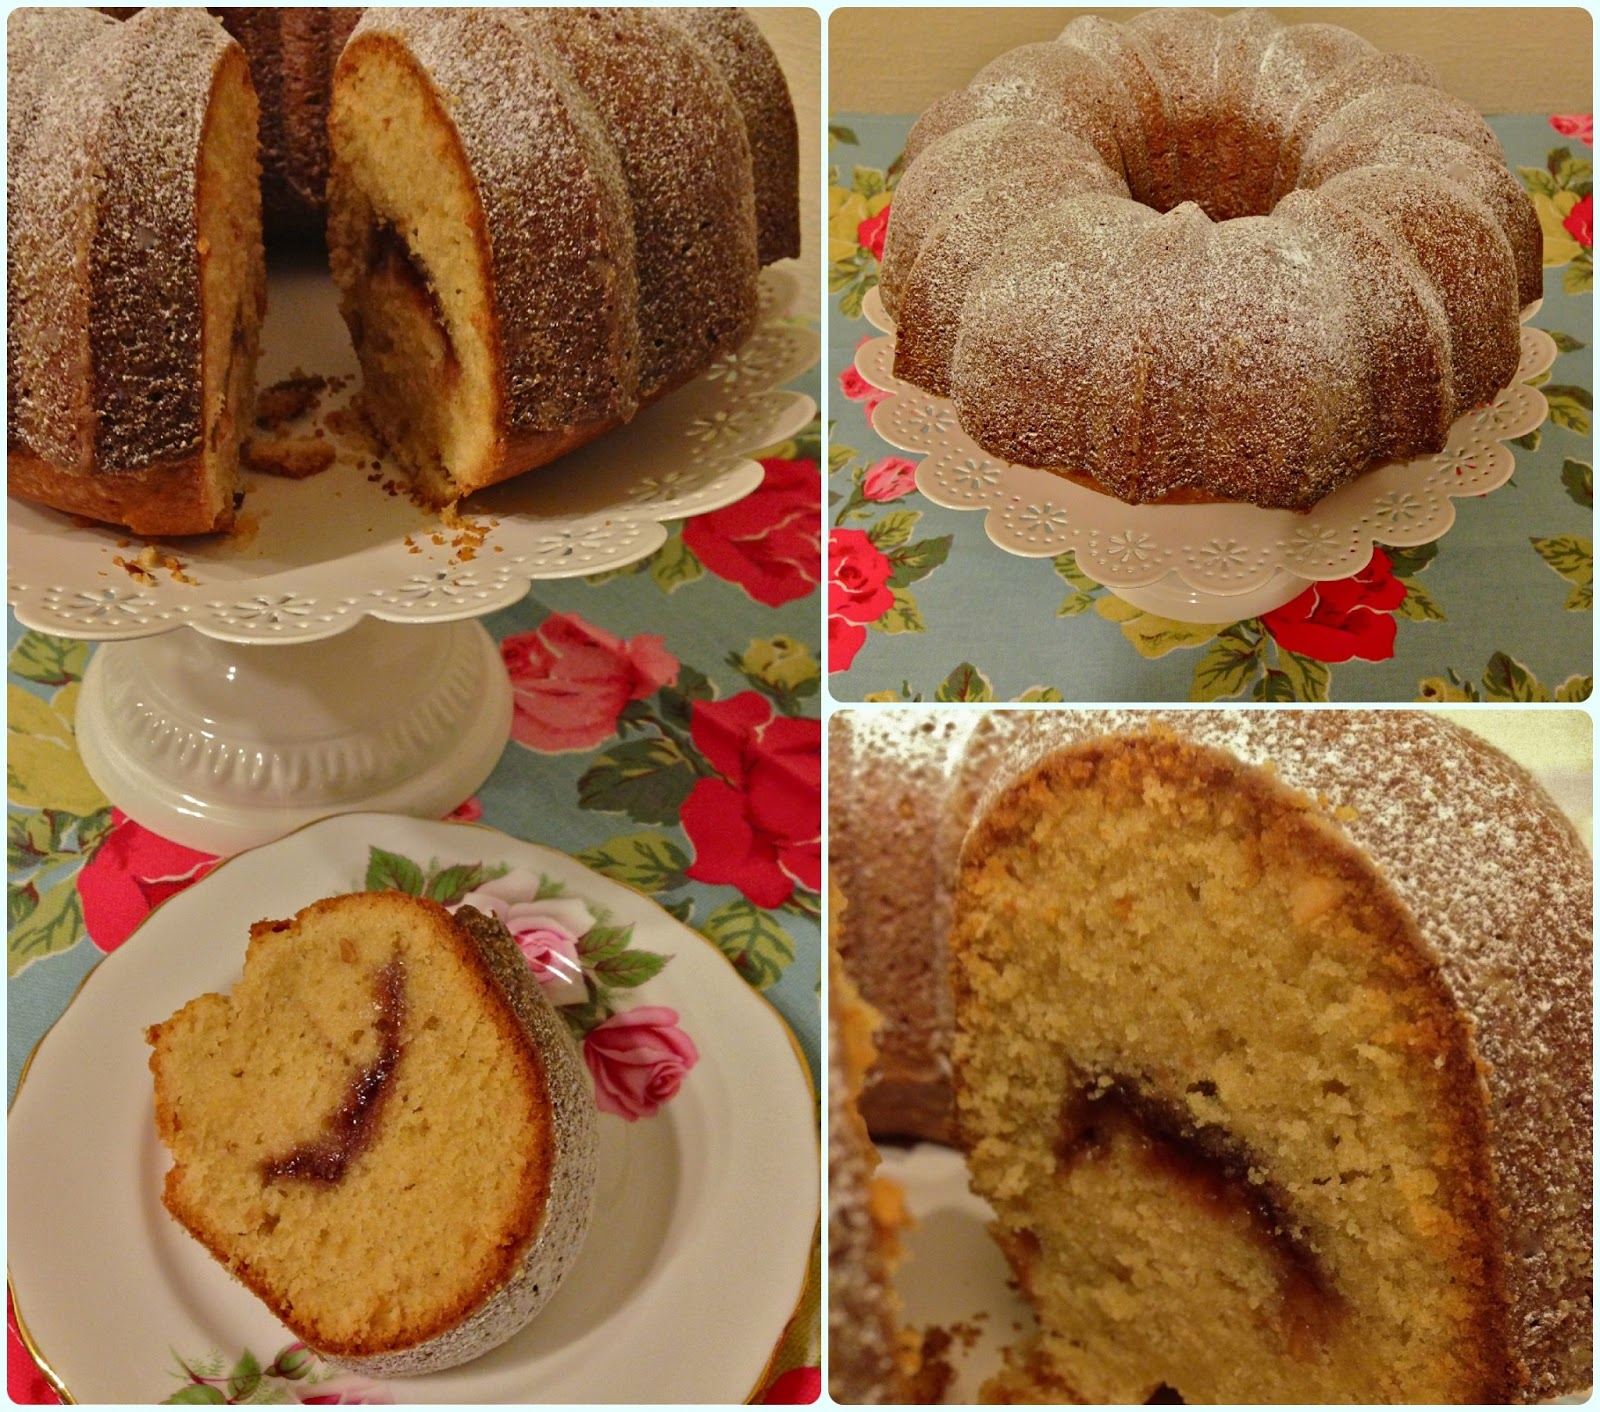 Dishoom covent garden london dollybakes - Peanut Butter And Jelly Bundt